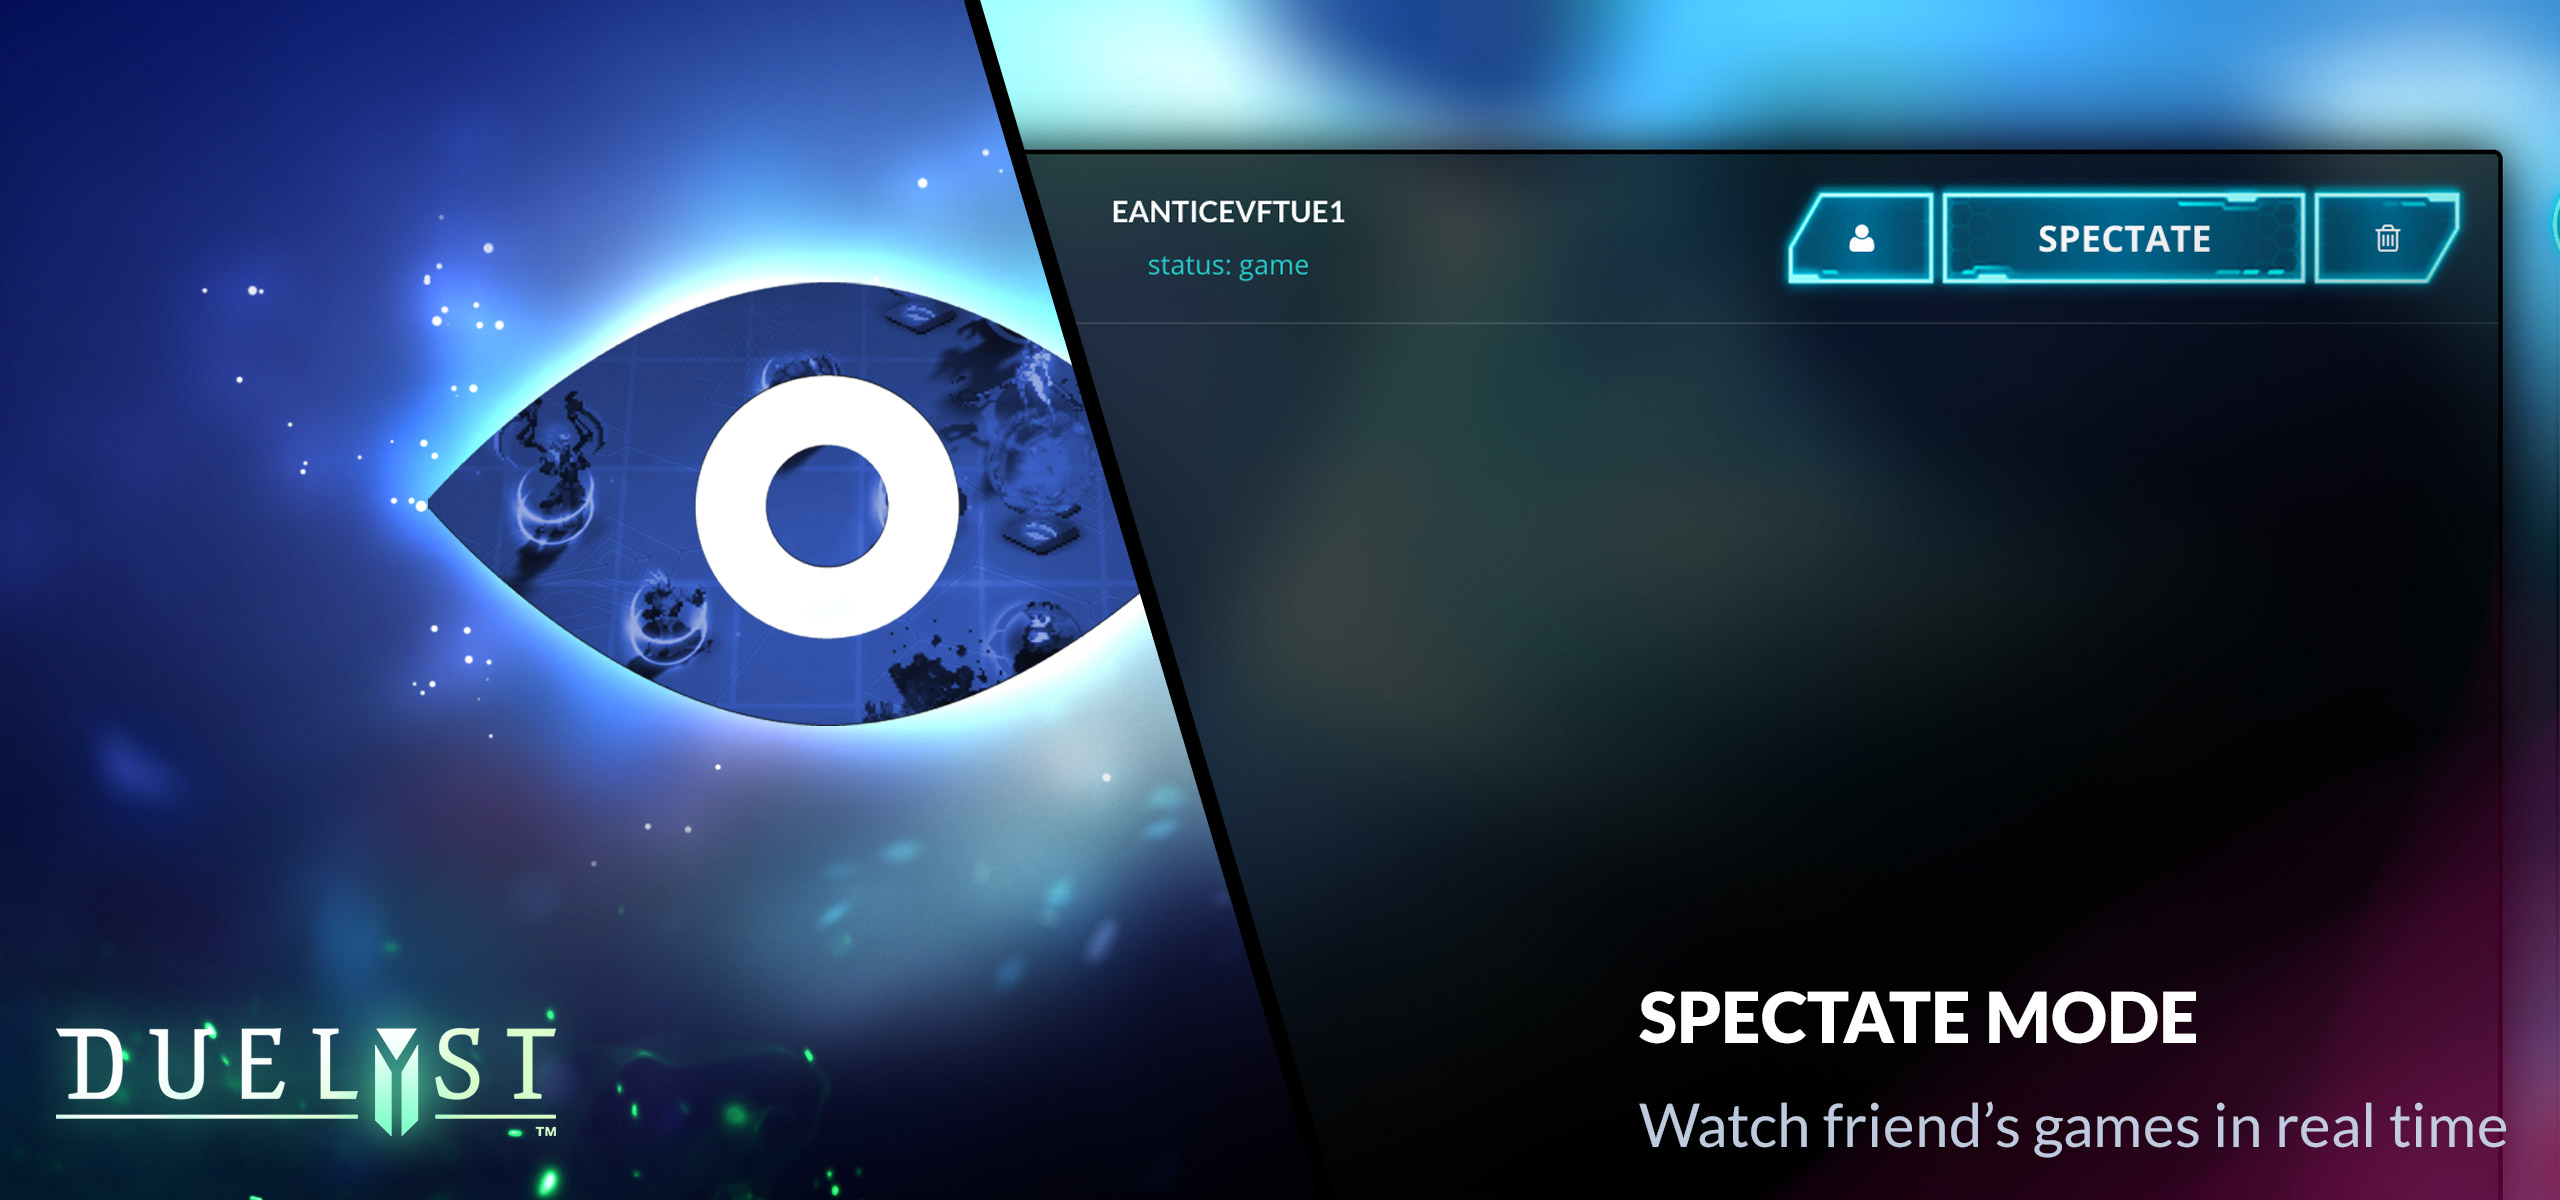 spectate_mode